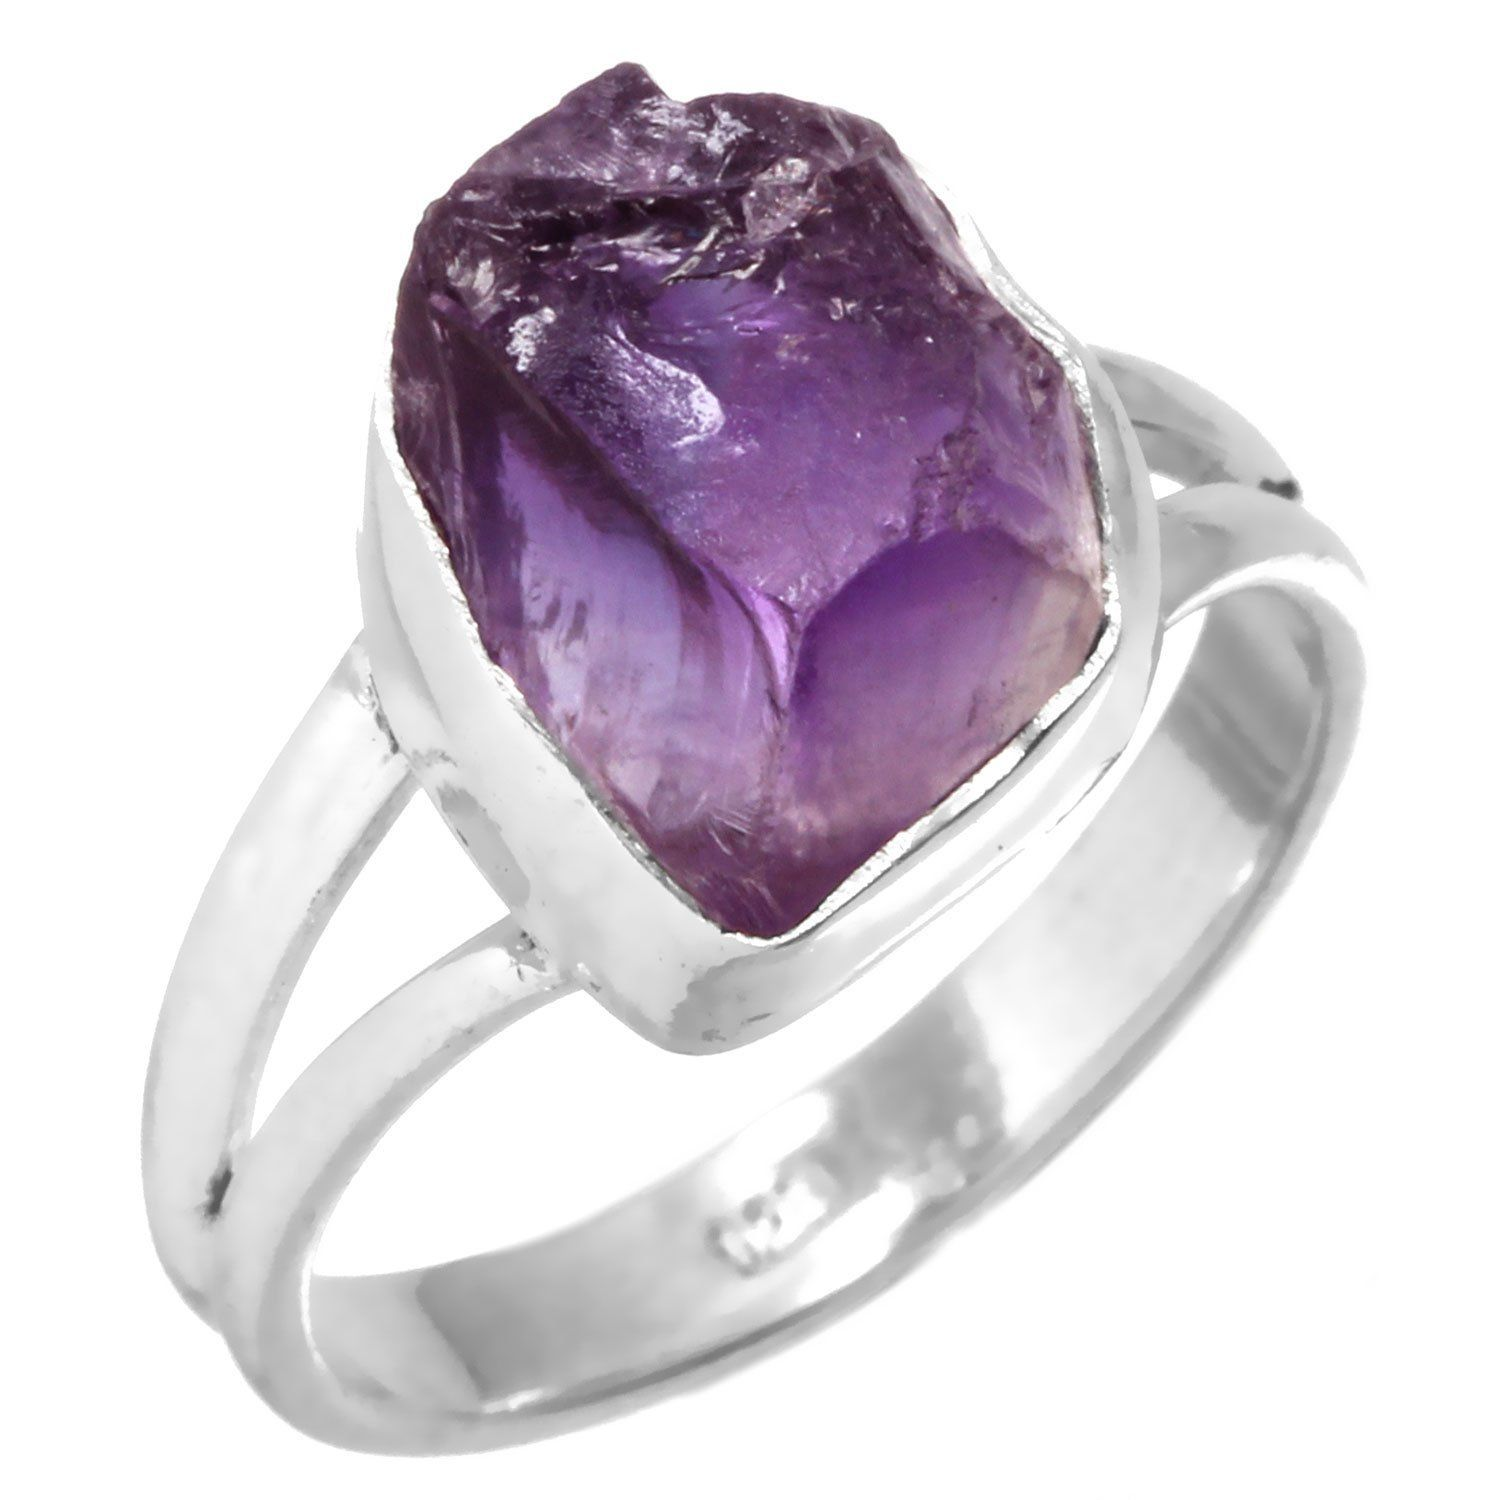 Natural Amethyst Rough Gemstone Ring Solid 925 Sterling